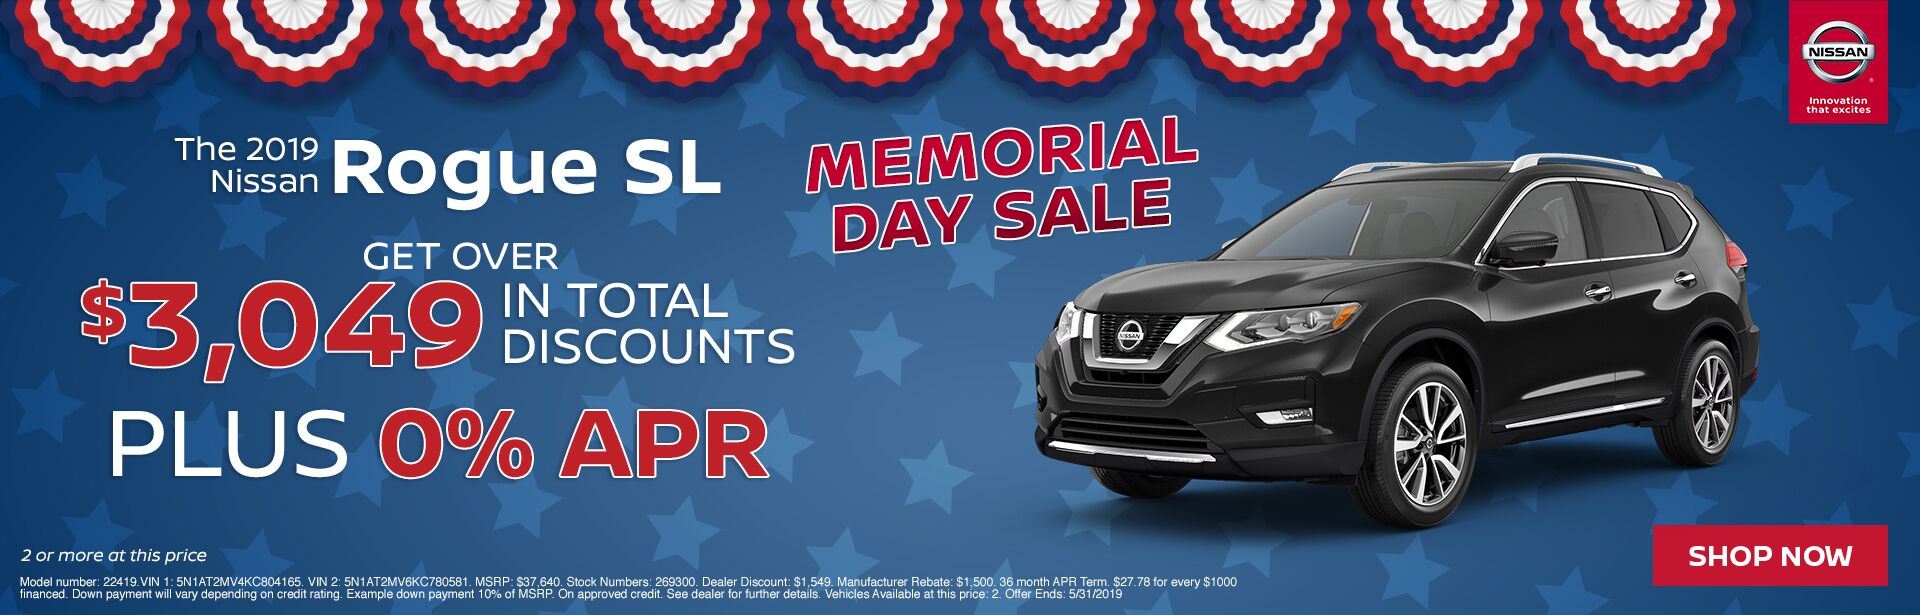 Rogue Offer- Memorial Day